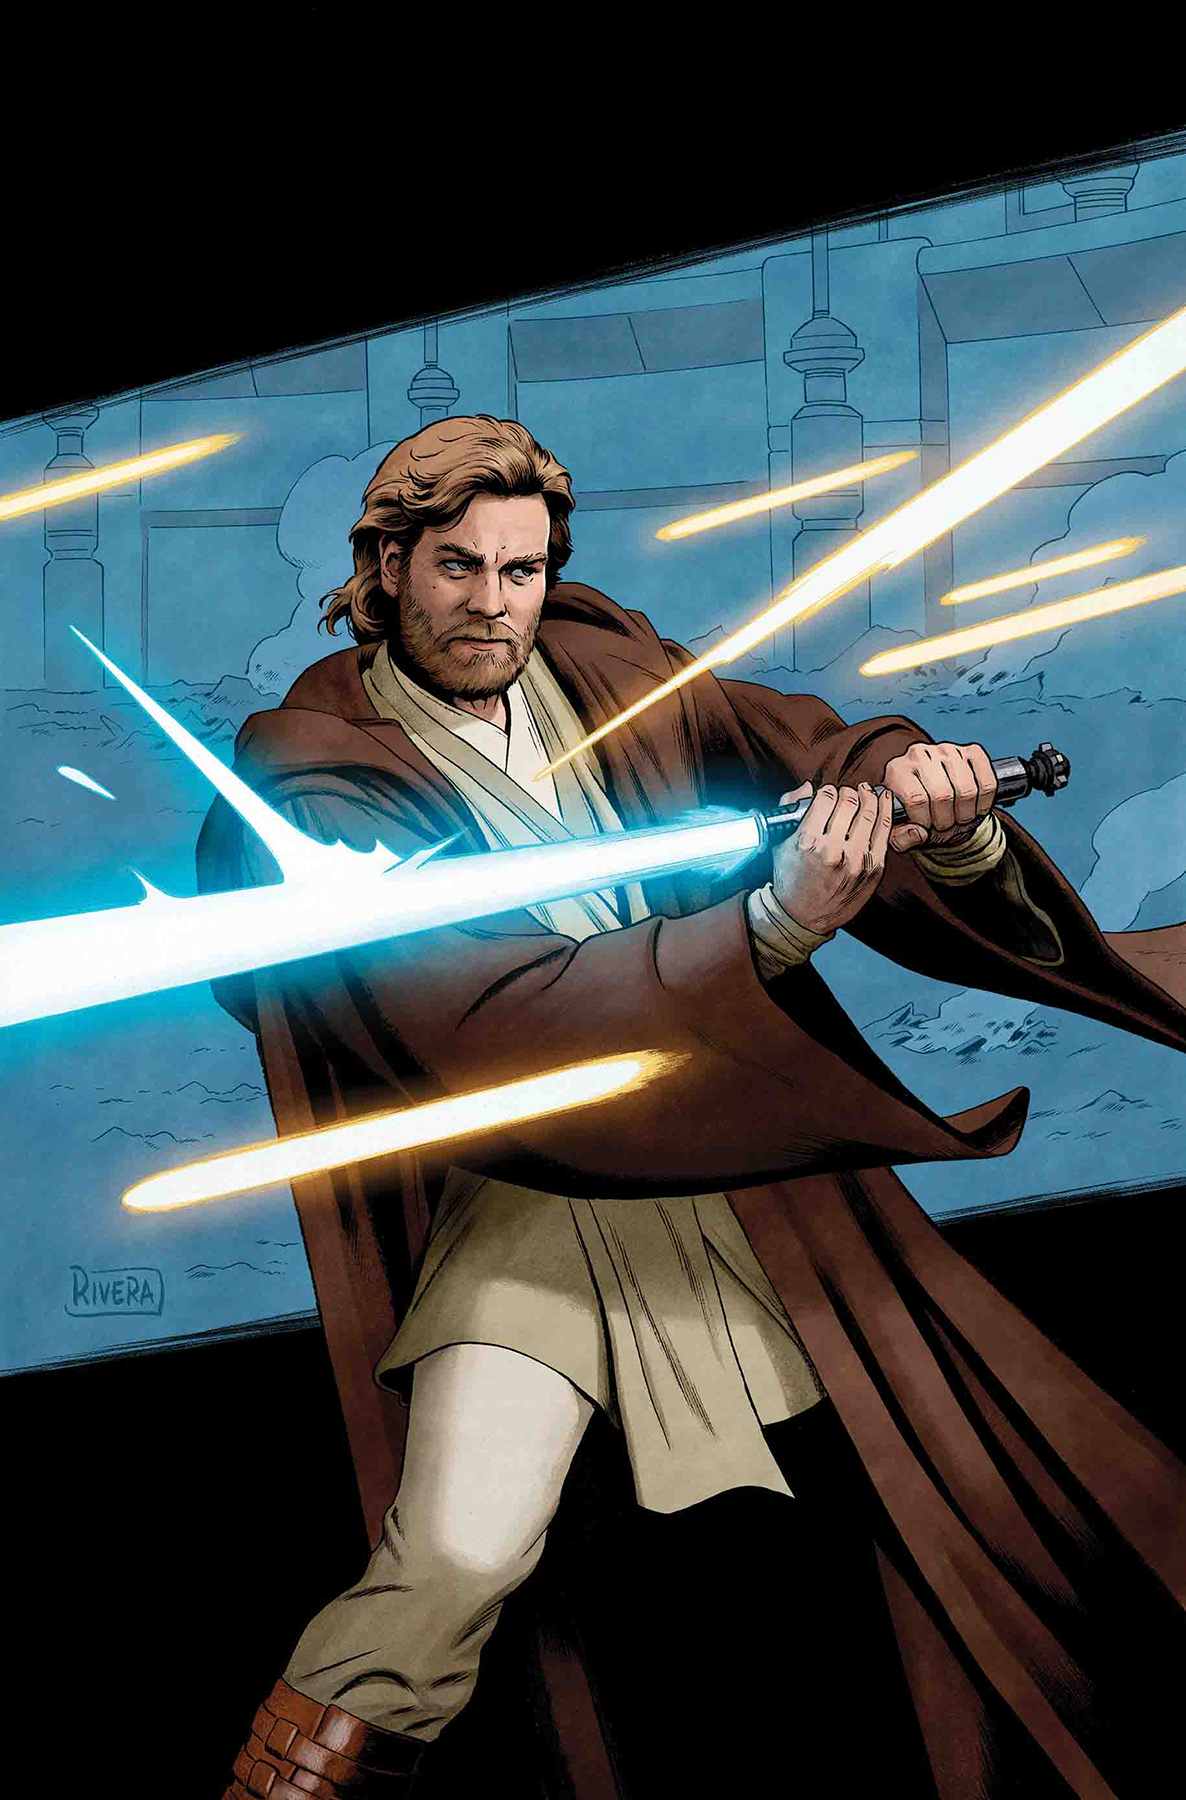 STAR WARS AOR OBI-WAN KENOBI #1 (OF 1)